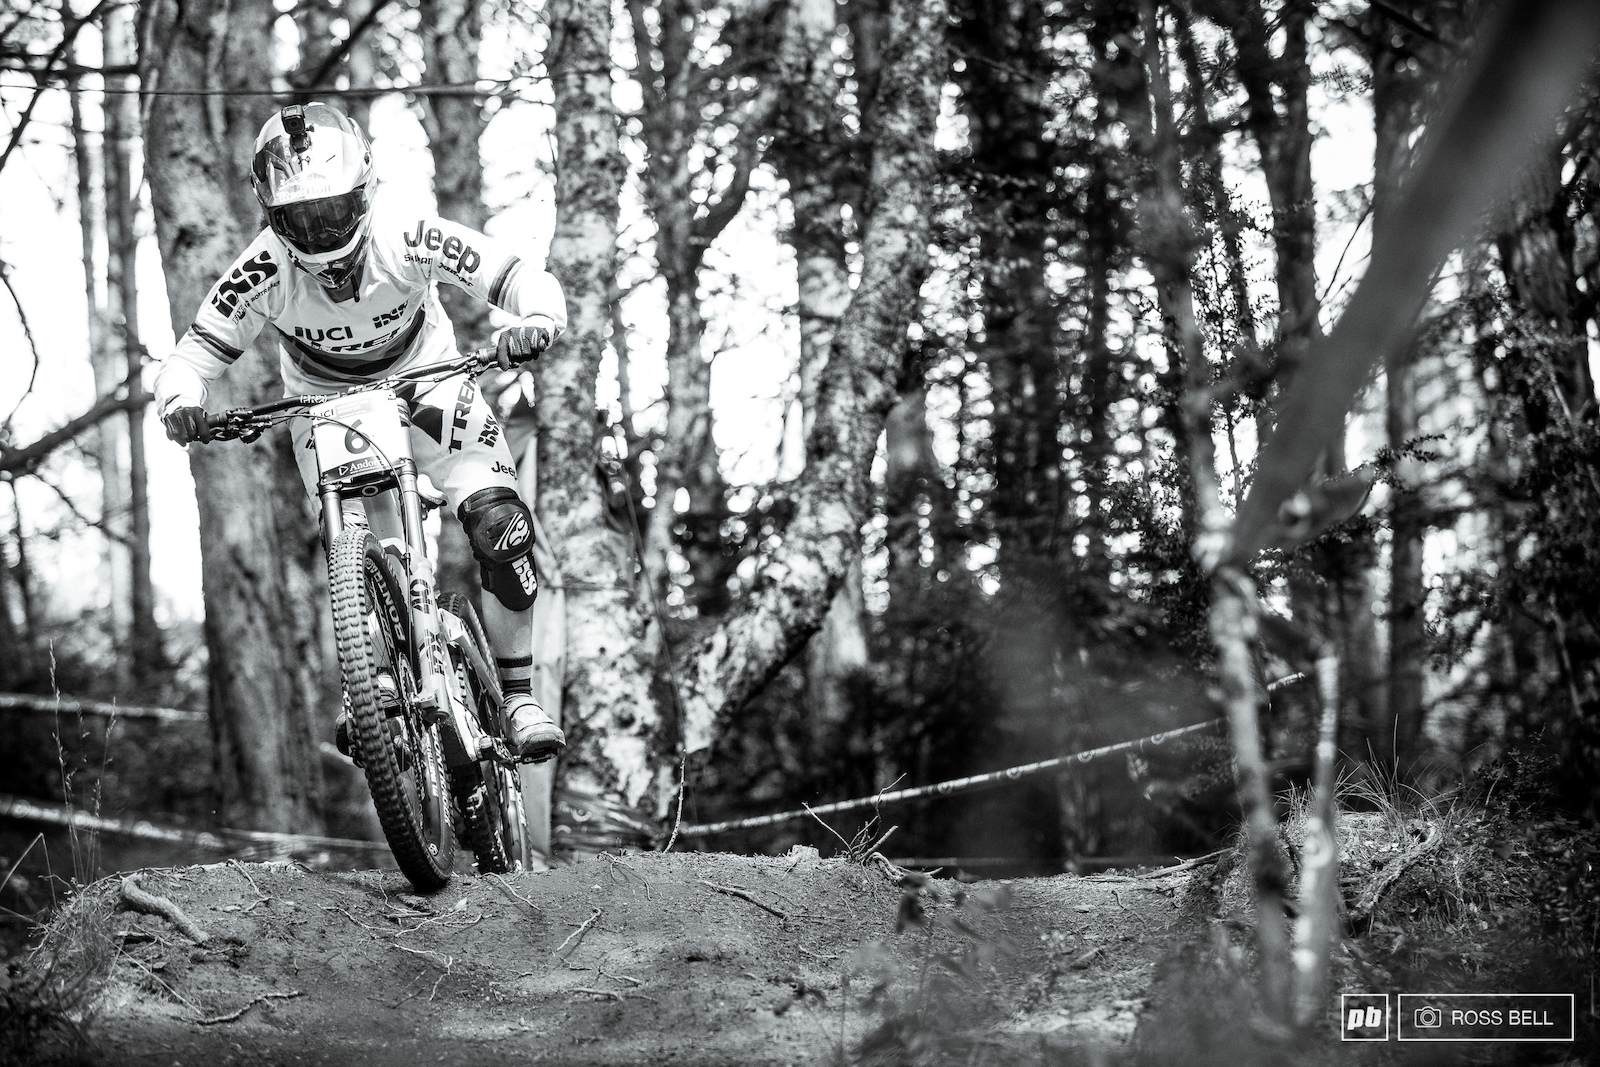 It was always going to be hard for Rachel Atherton coming back form injury on a track like this. She ll just have to ease her way back into racing and start to hunt for race wins and World Champs at the end of the season.